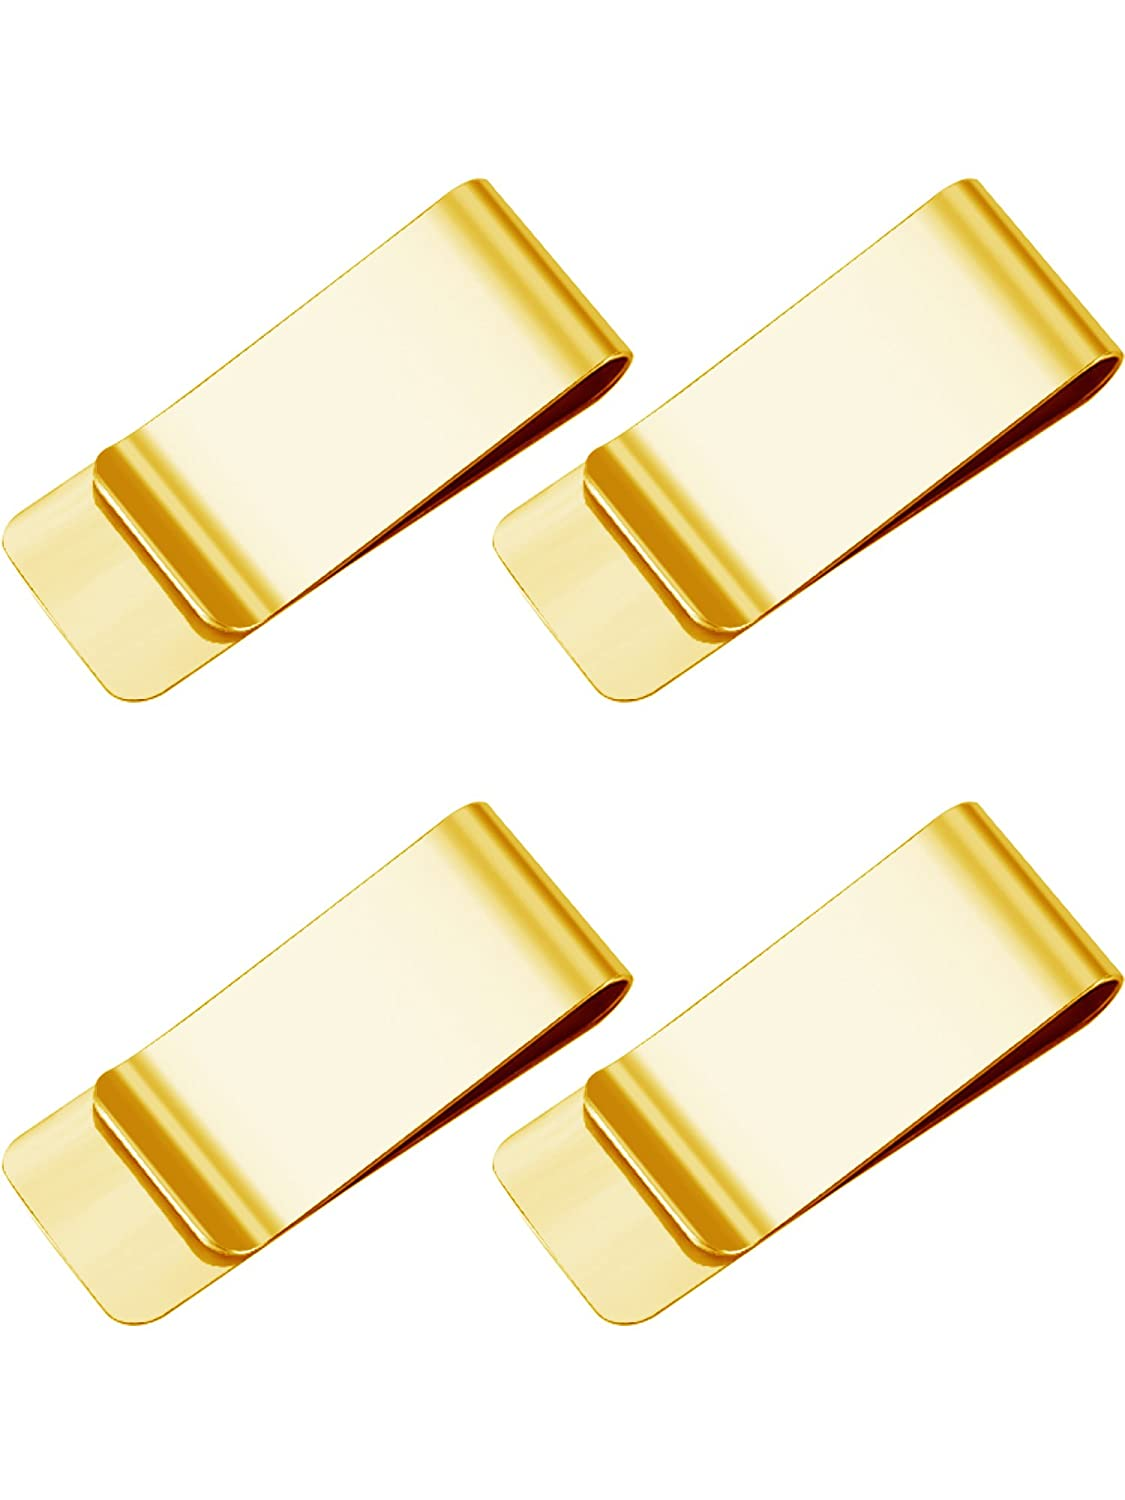 4 Pack Slim Metal Money Clip Wallet Bill Clips Card Holder for Men and Women (Gold)